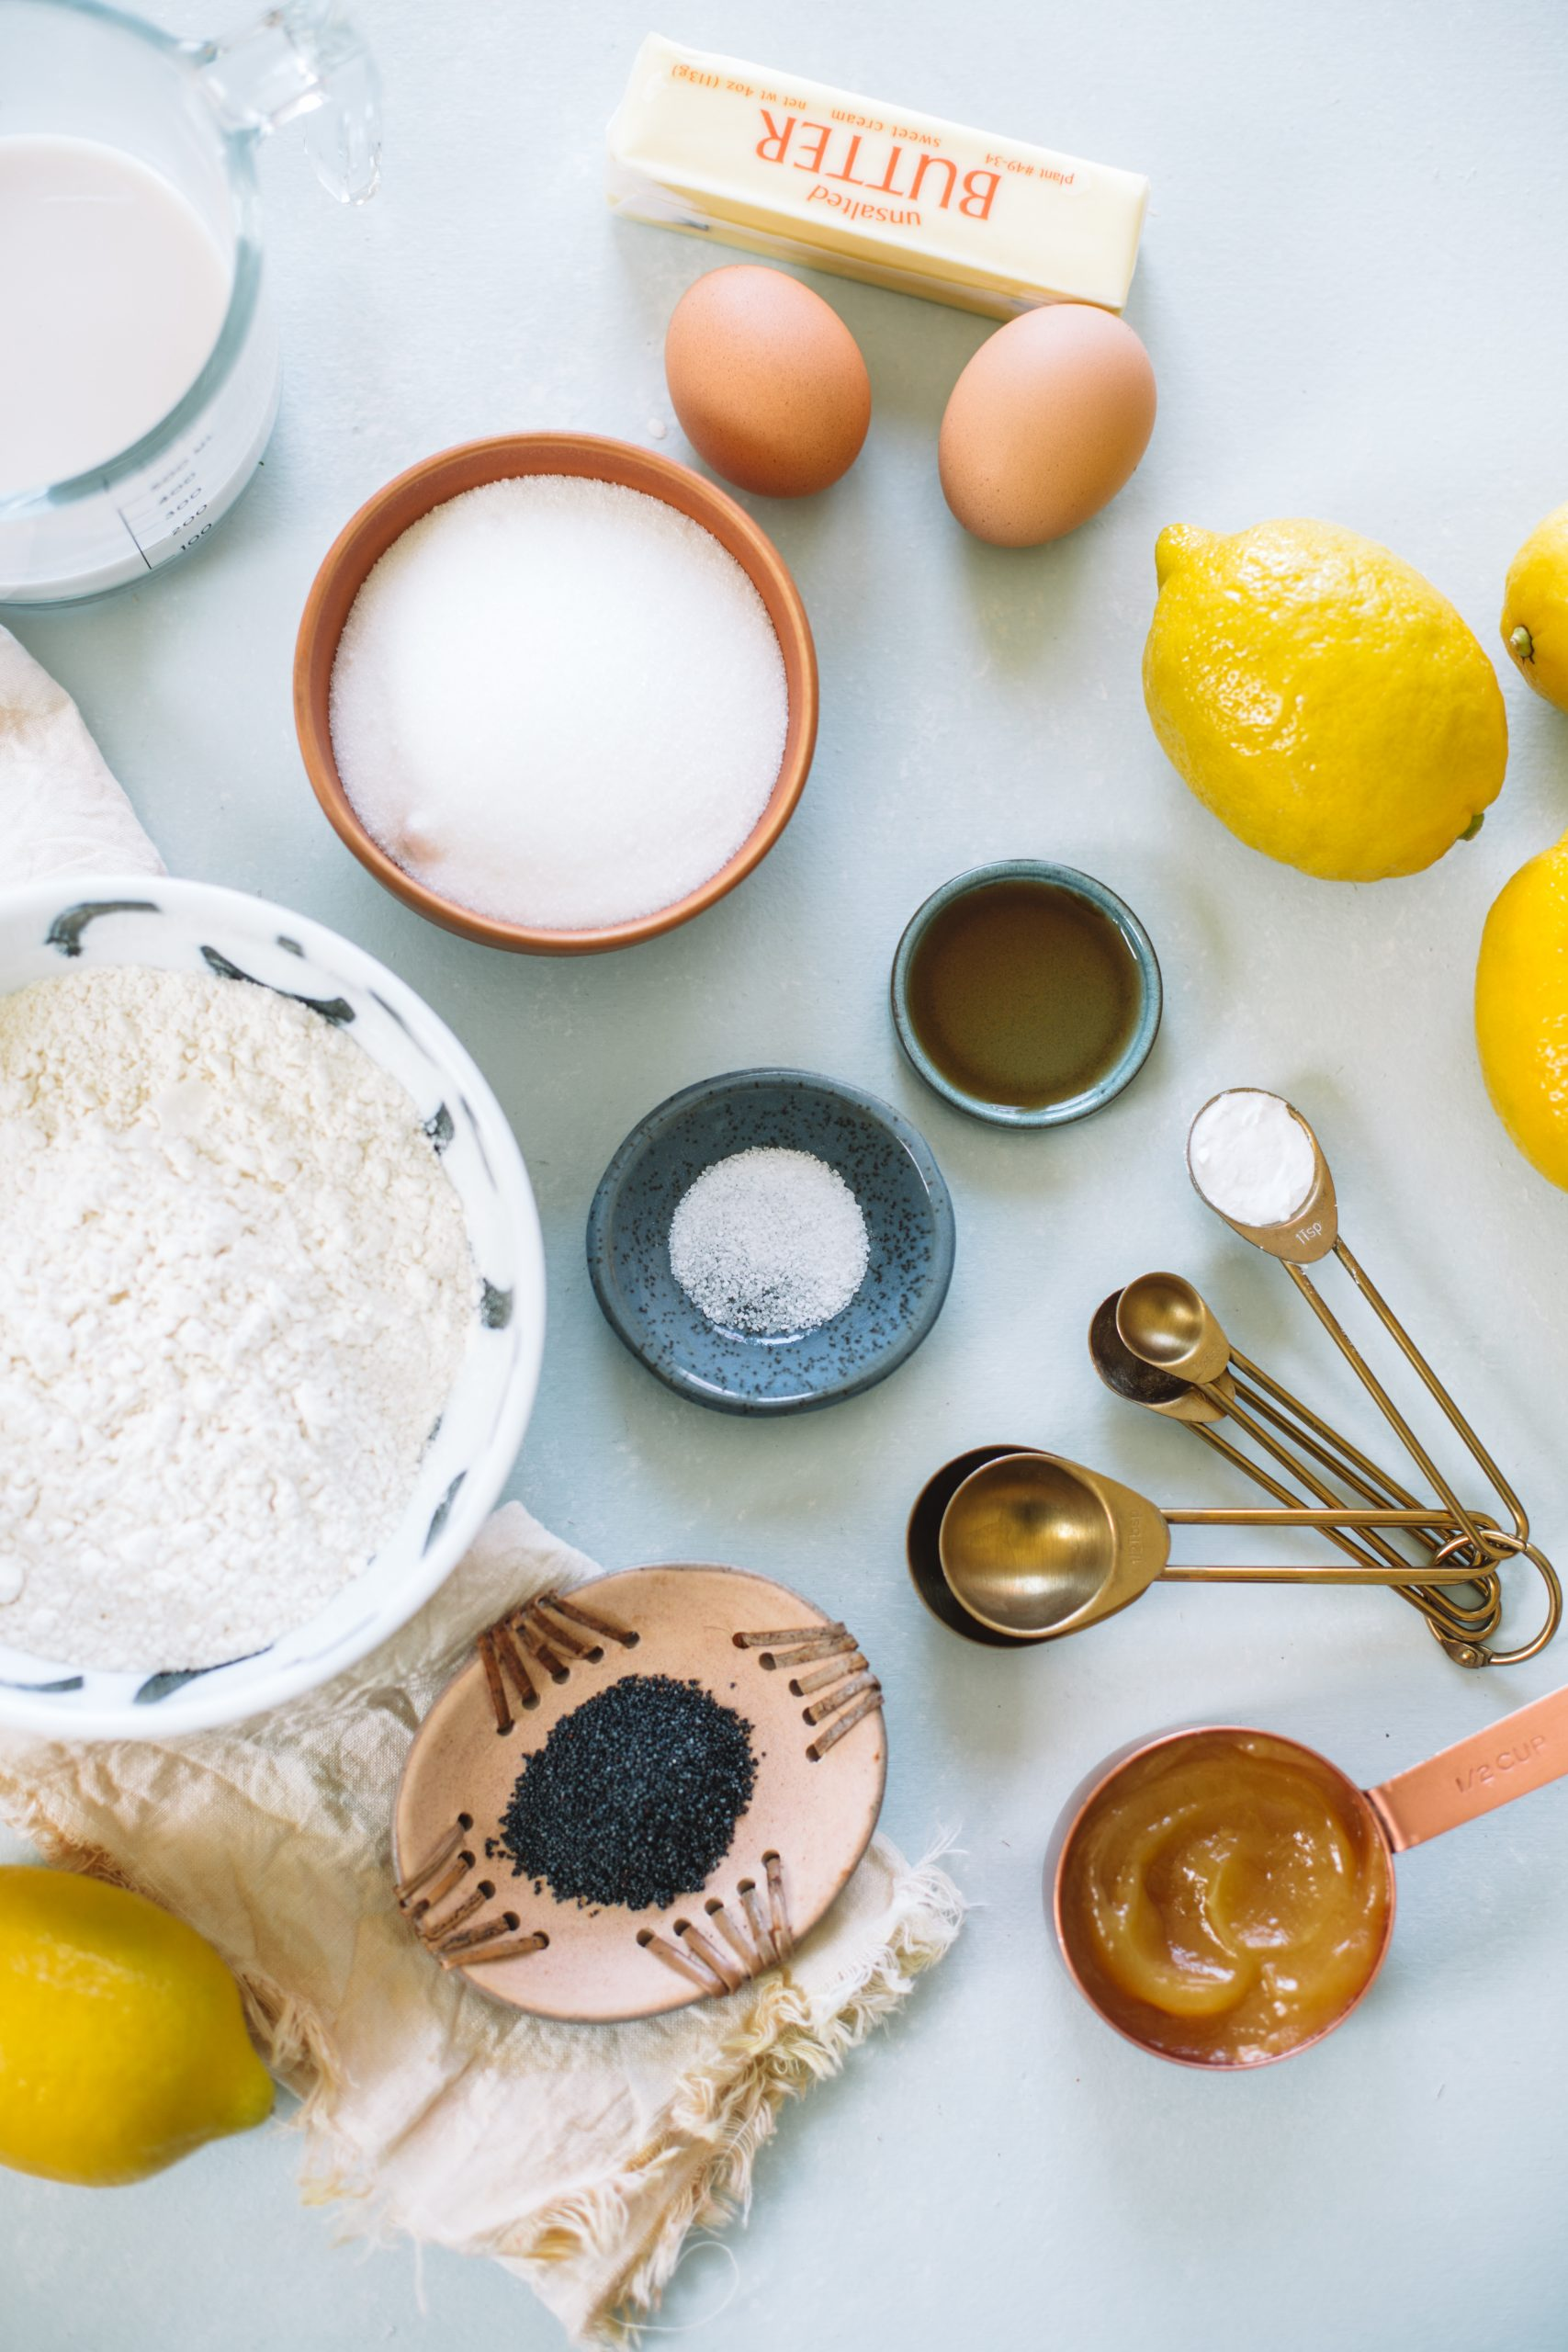 Ingredients to make Lemon Poppyseed Loaf Cake.